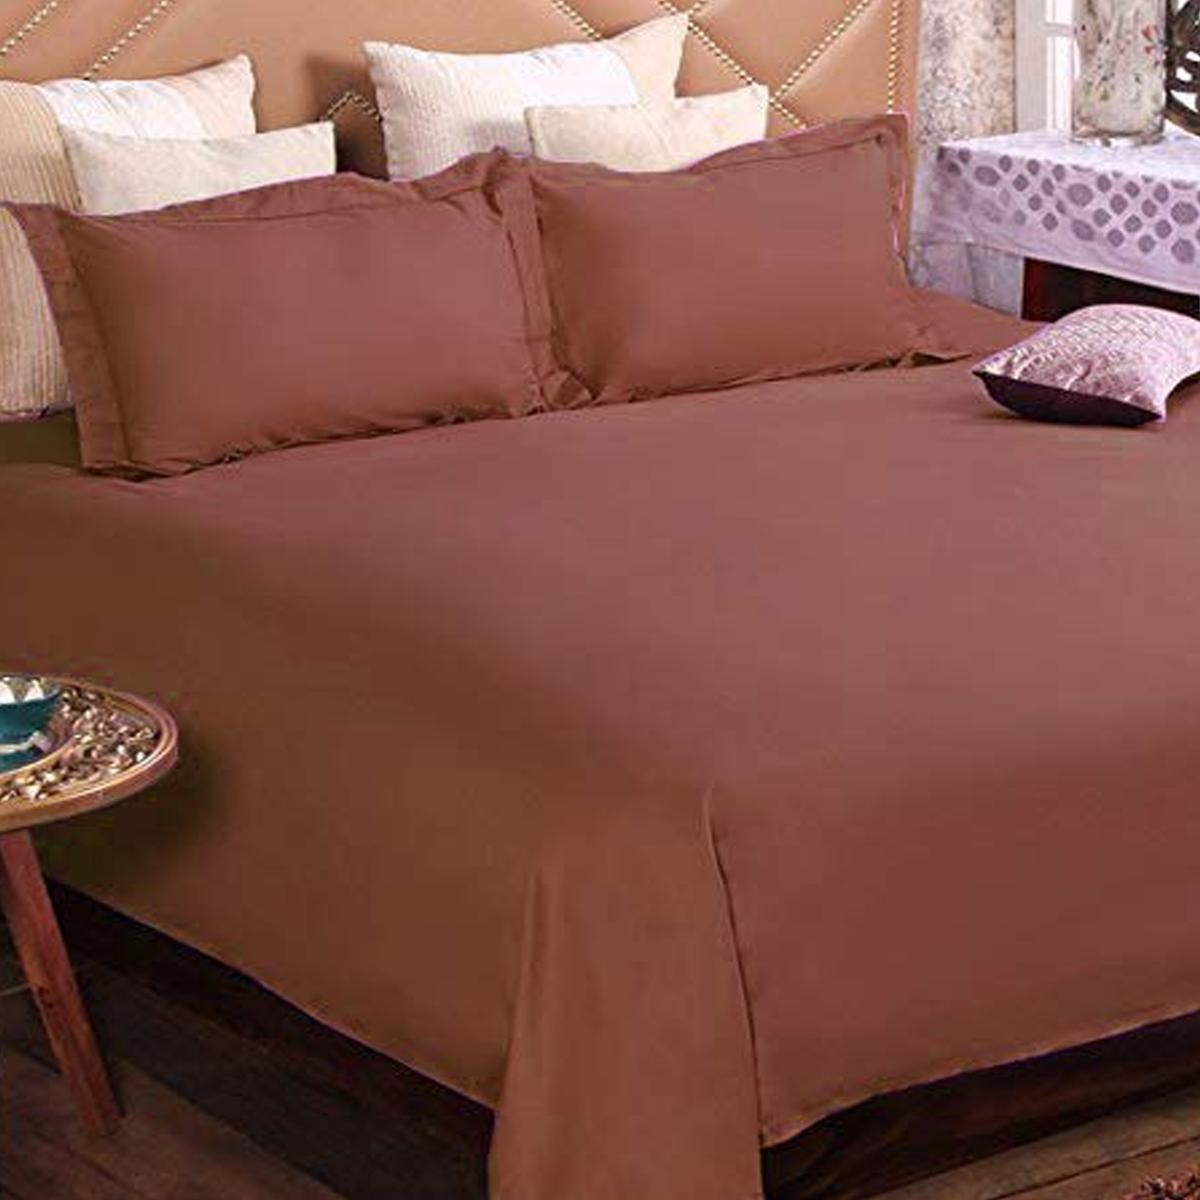 Bombay Dyeing Coffee Brown Colored Rosie Plains Cotton Double Bedsheet with 2 Pillow Covers